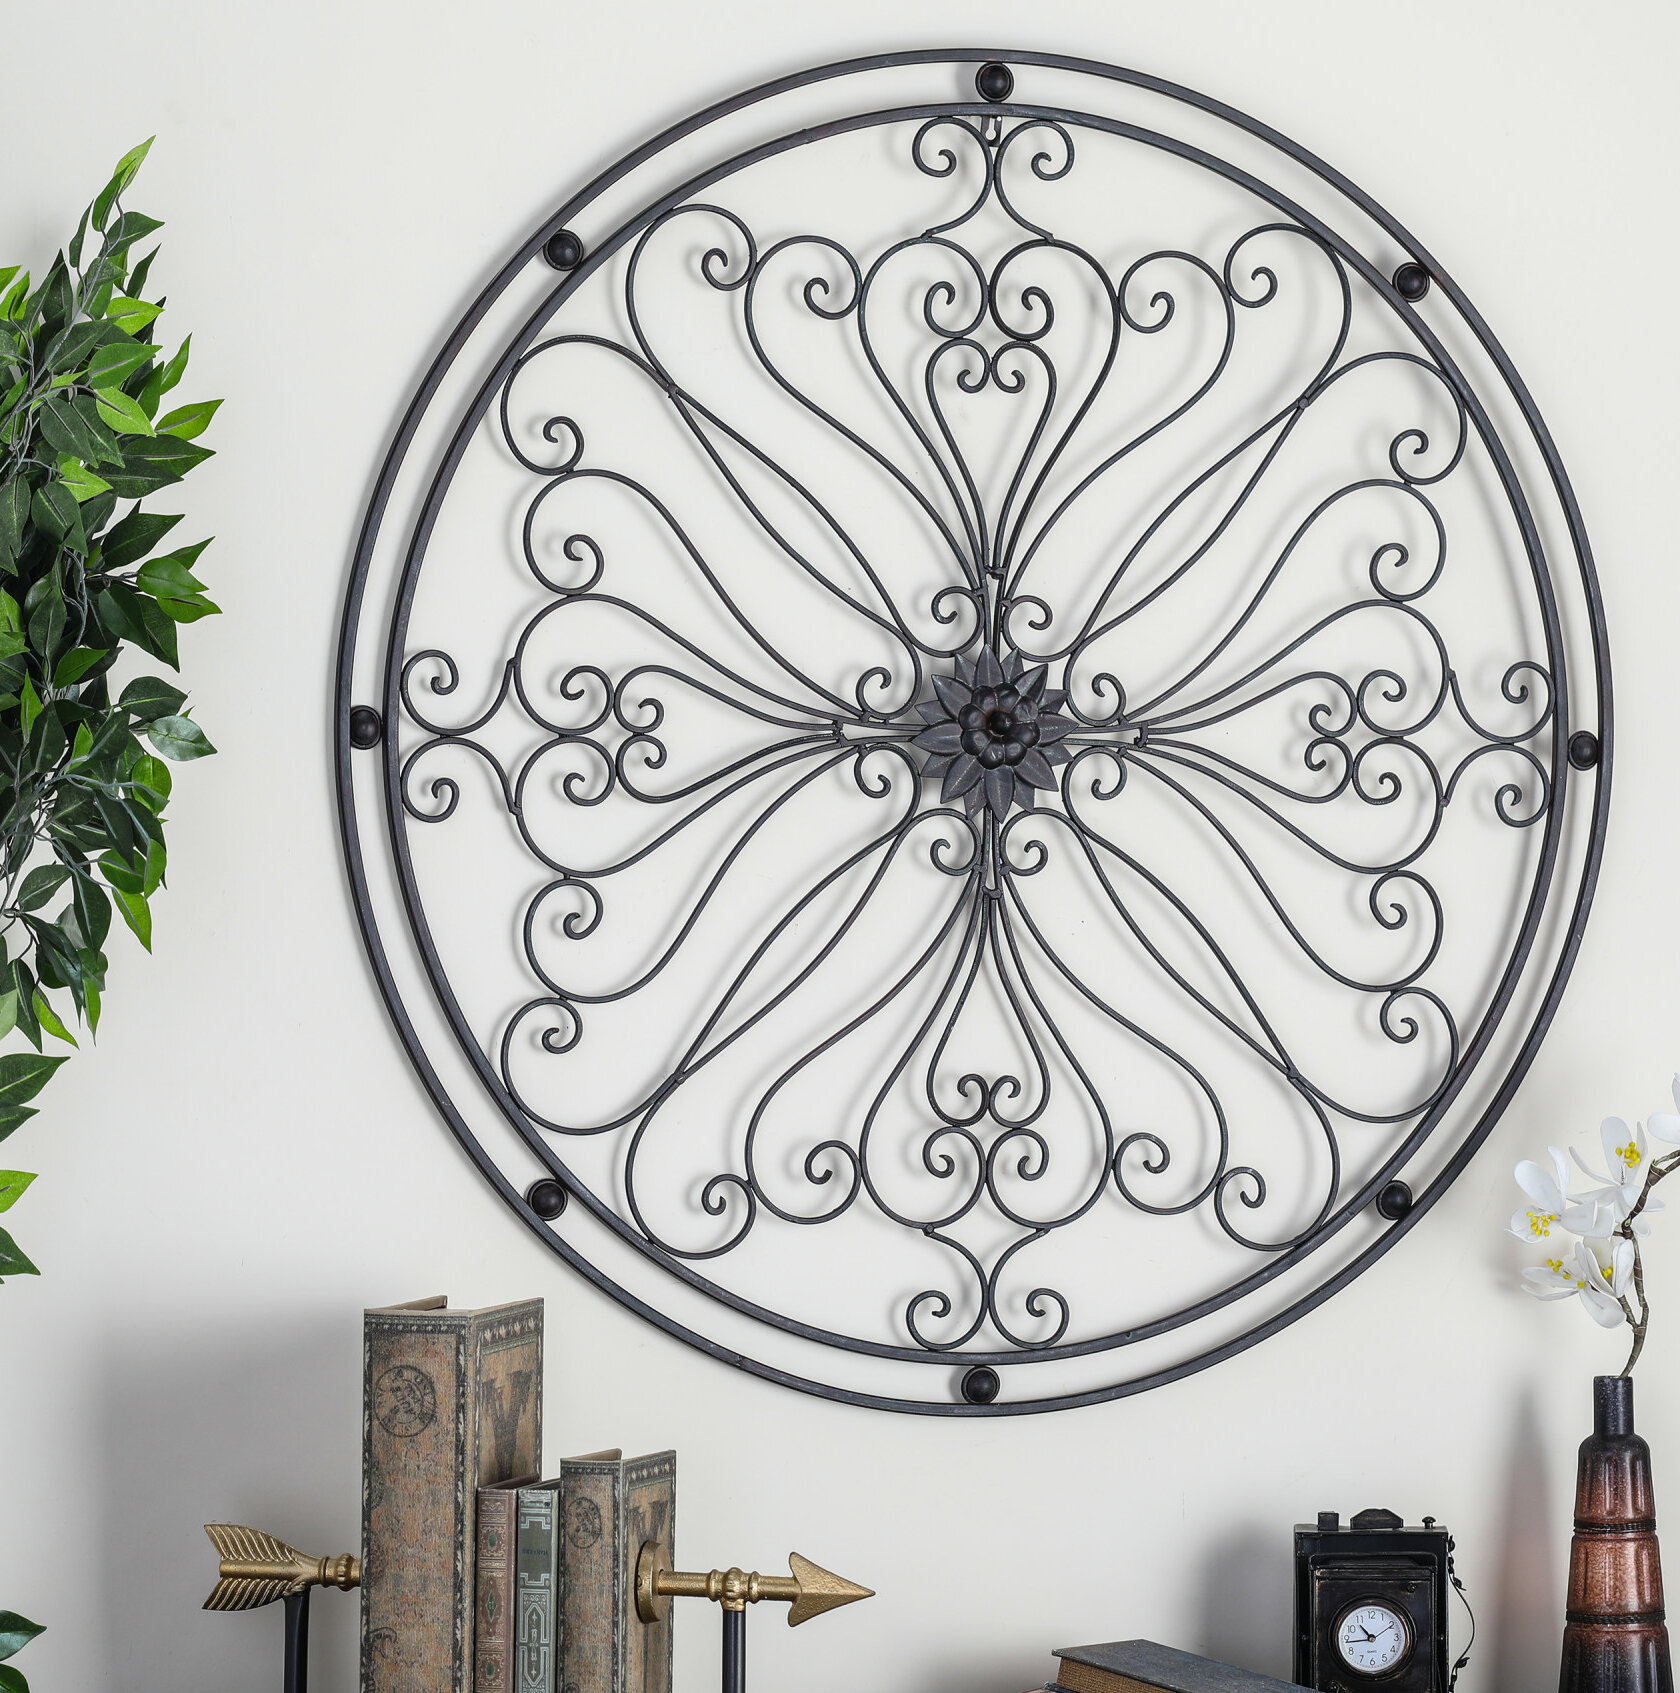 Round Wall Decor Set | Wayfair Throughout Contemporary Abstract Round Wall Decor (Gallery 4 of 30)